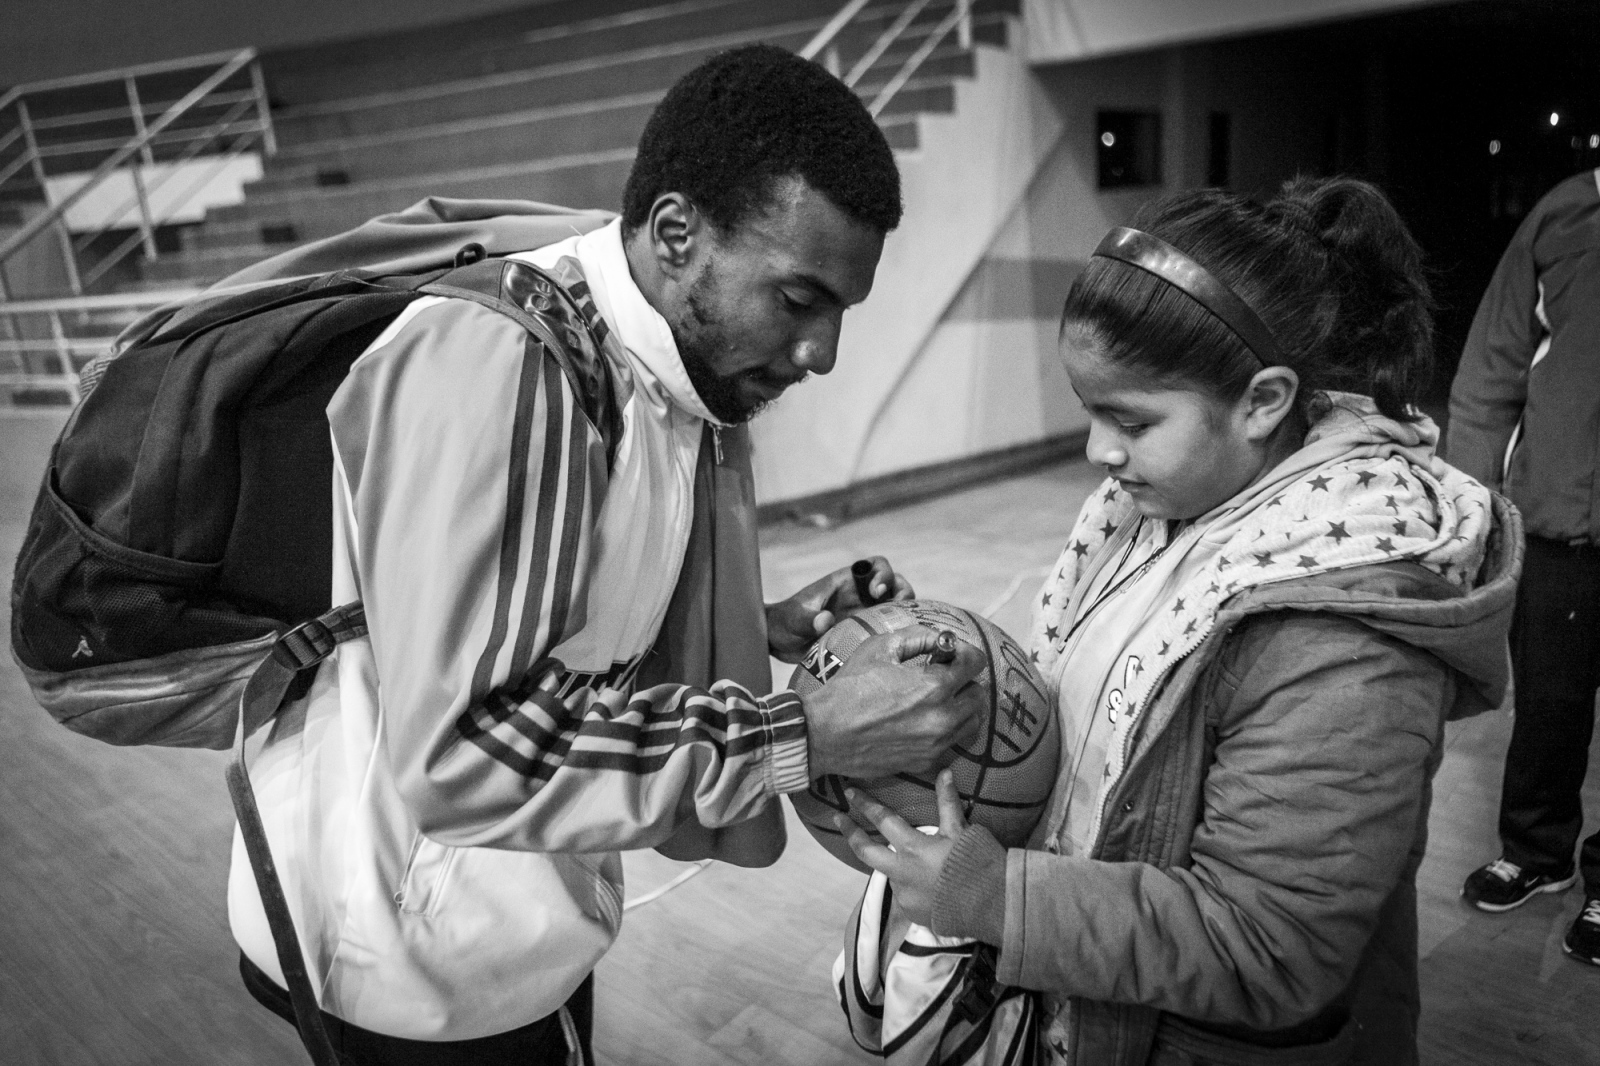 Tadavius Williams signs the ball of a fan after the game against Pichincha.